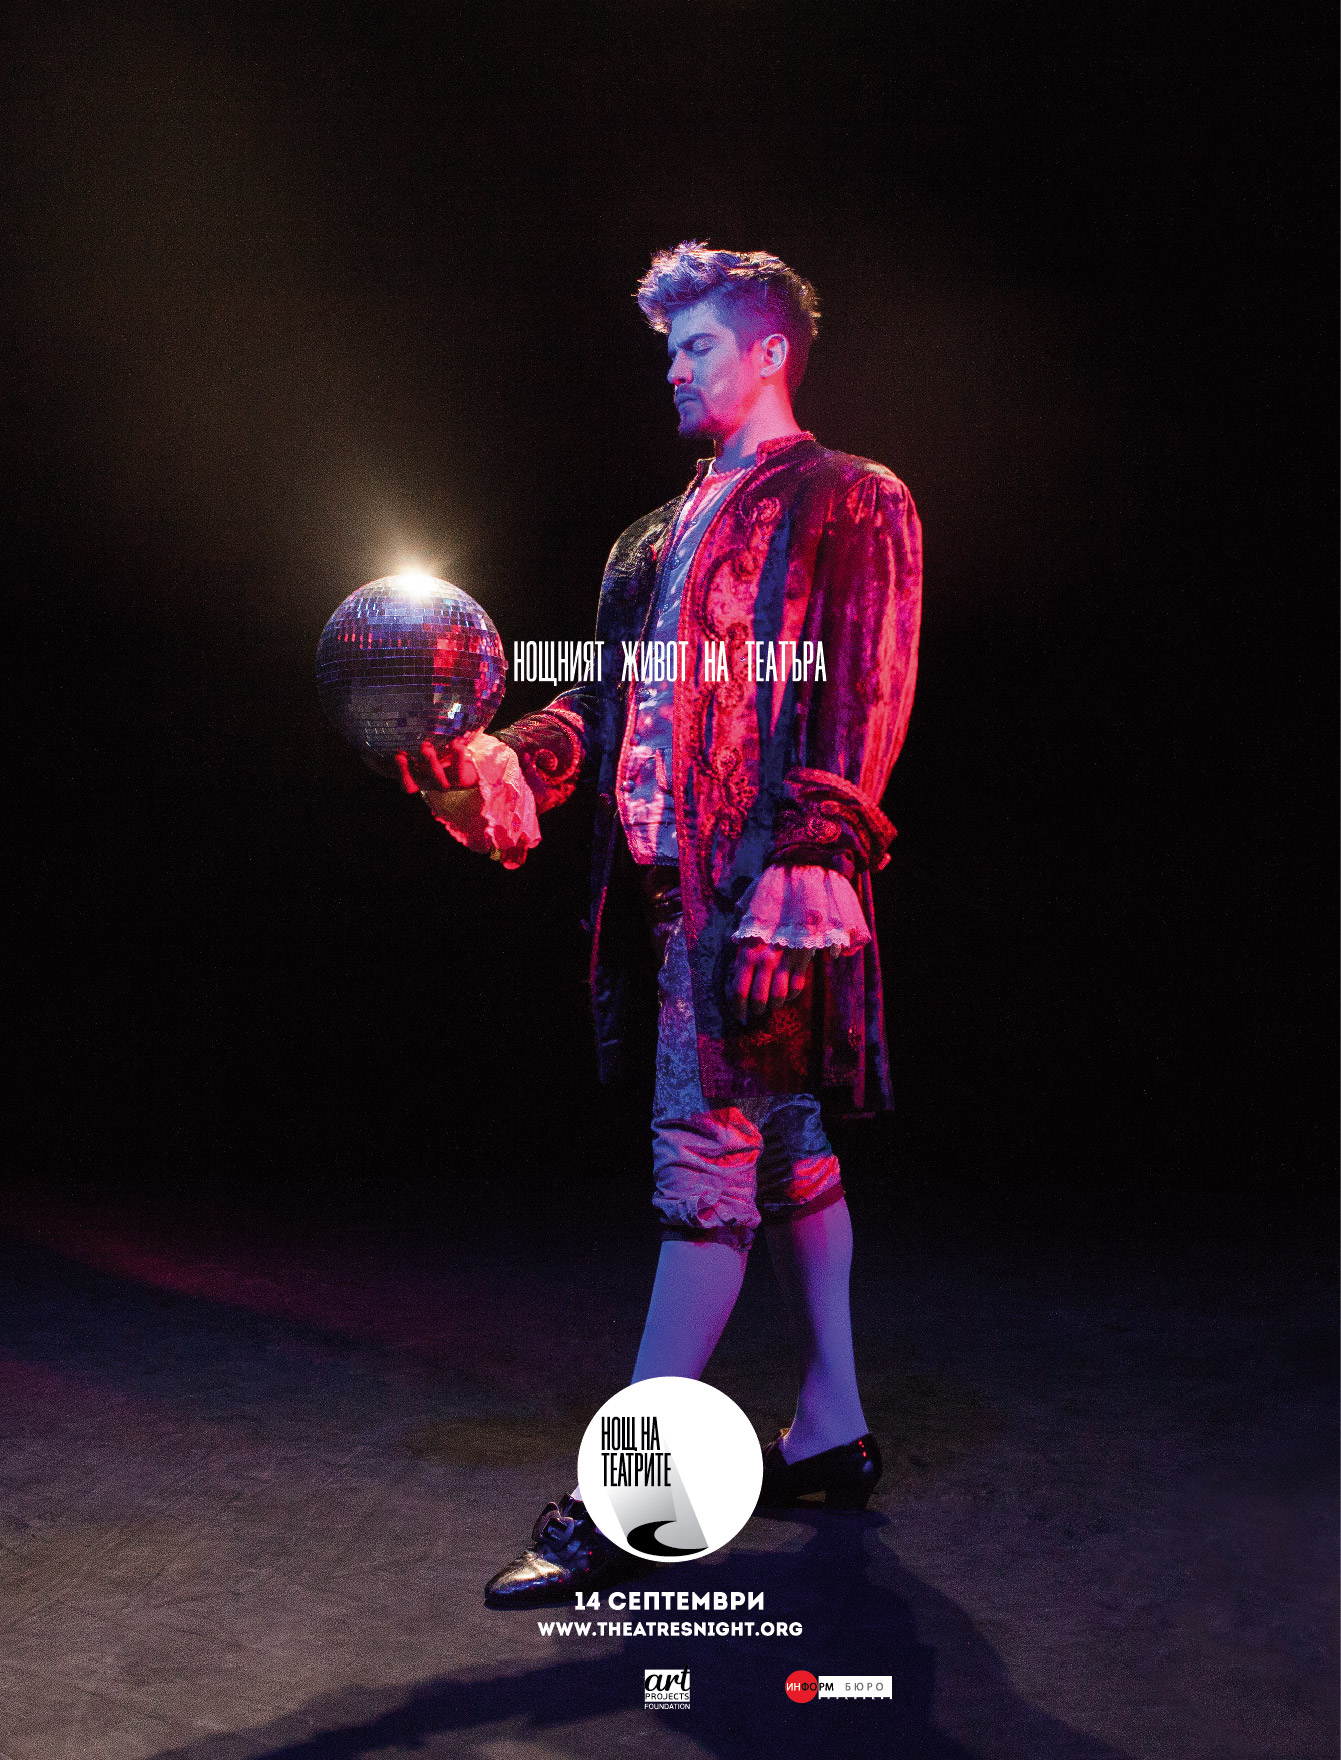 theatresNight_227x298_preview-01